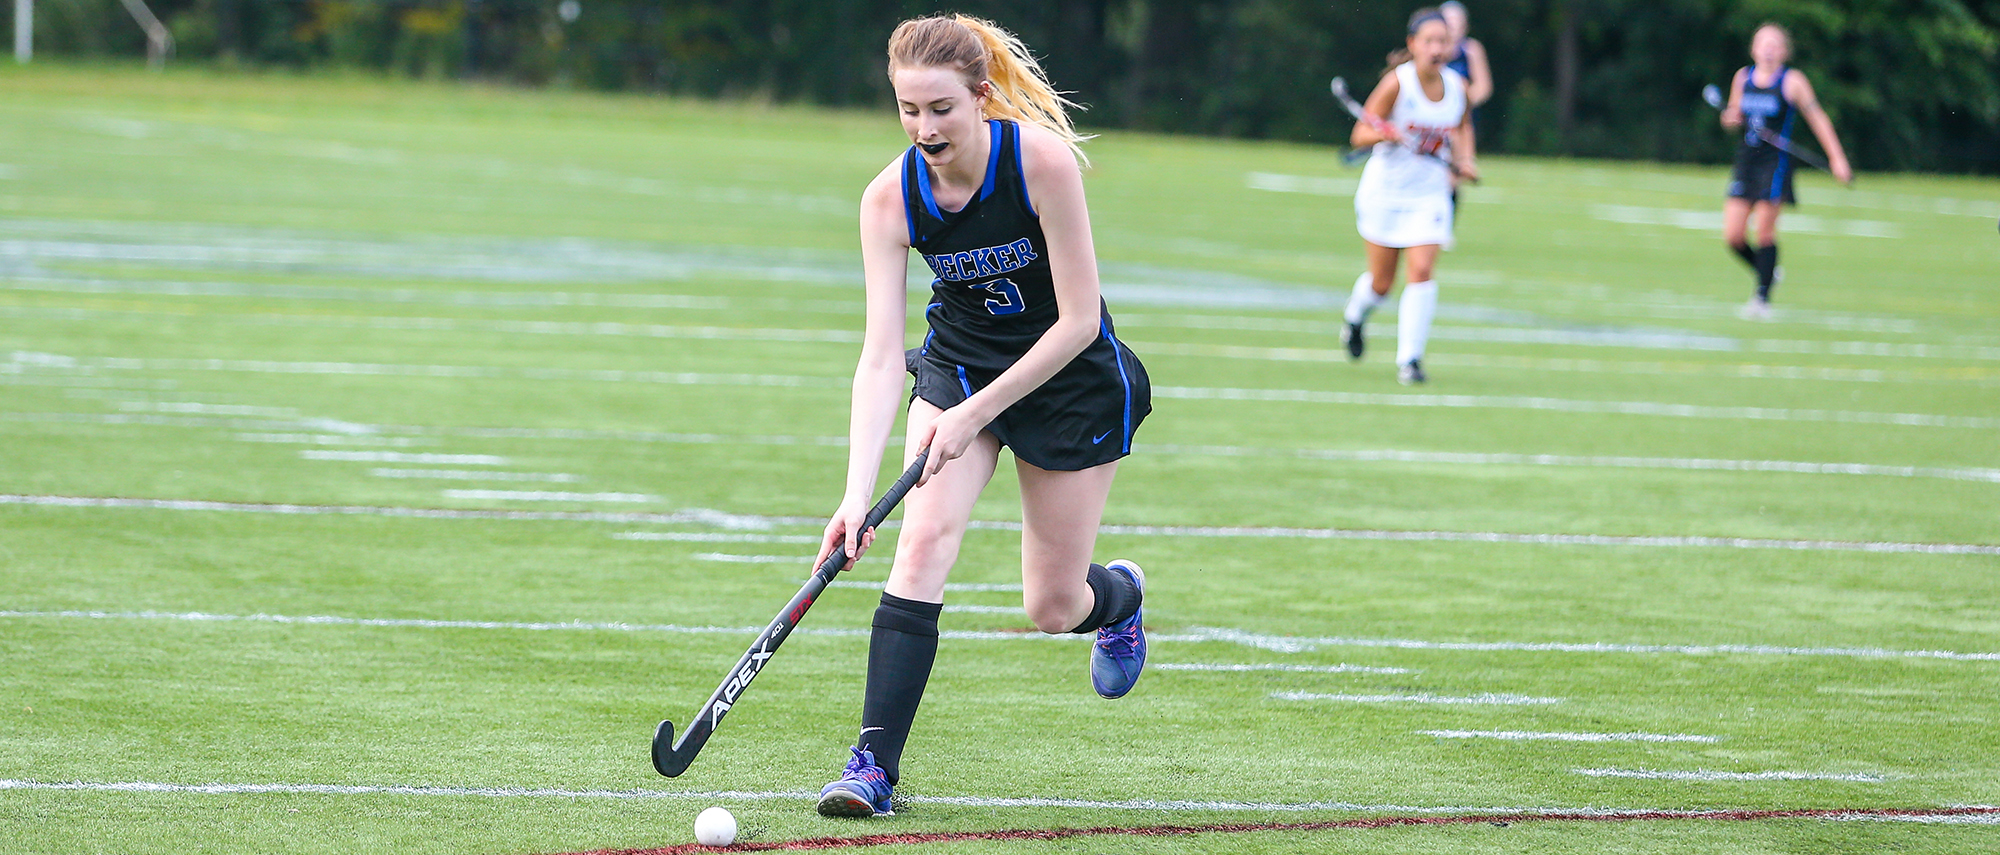 Katherine Bernier scored the first goal of the game as the Hawks defeated Bay Path 3-2.